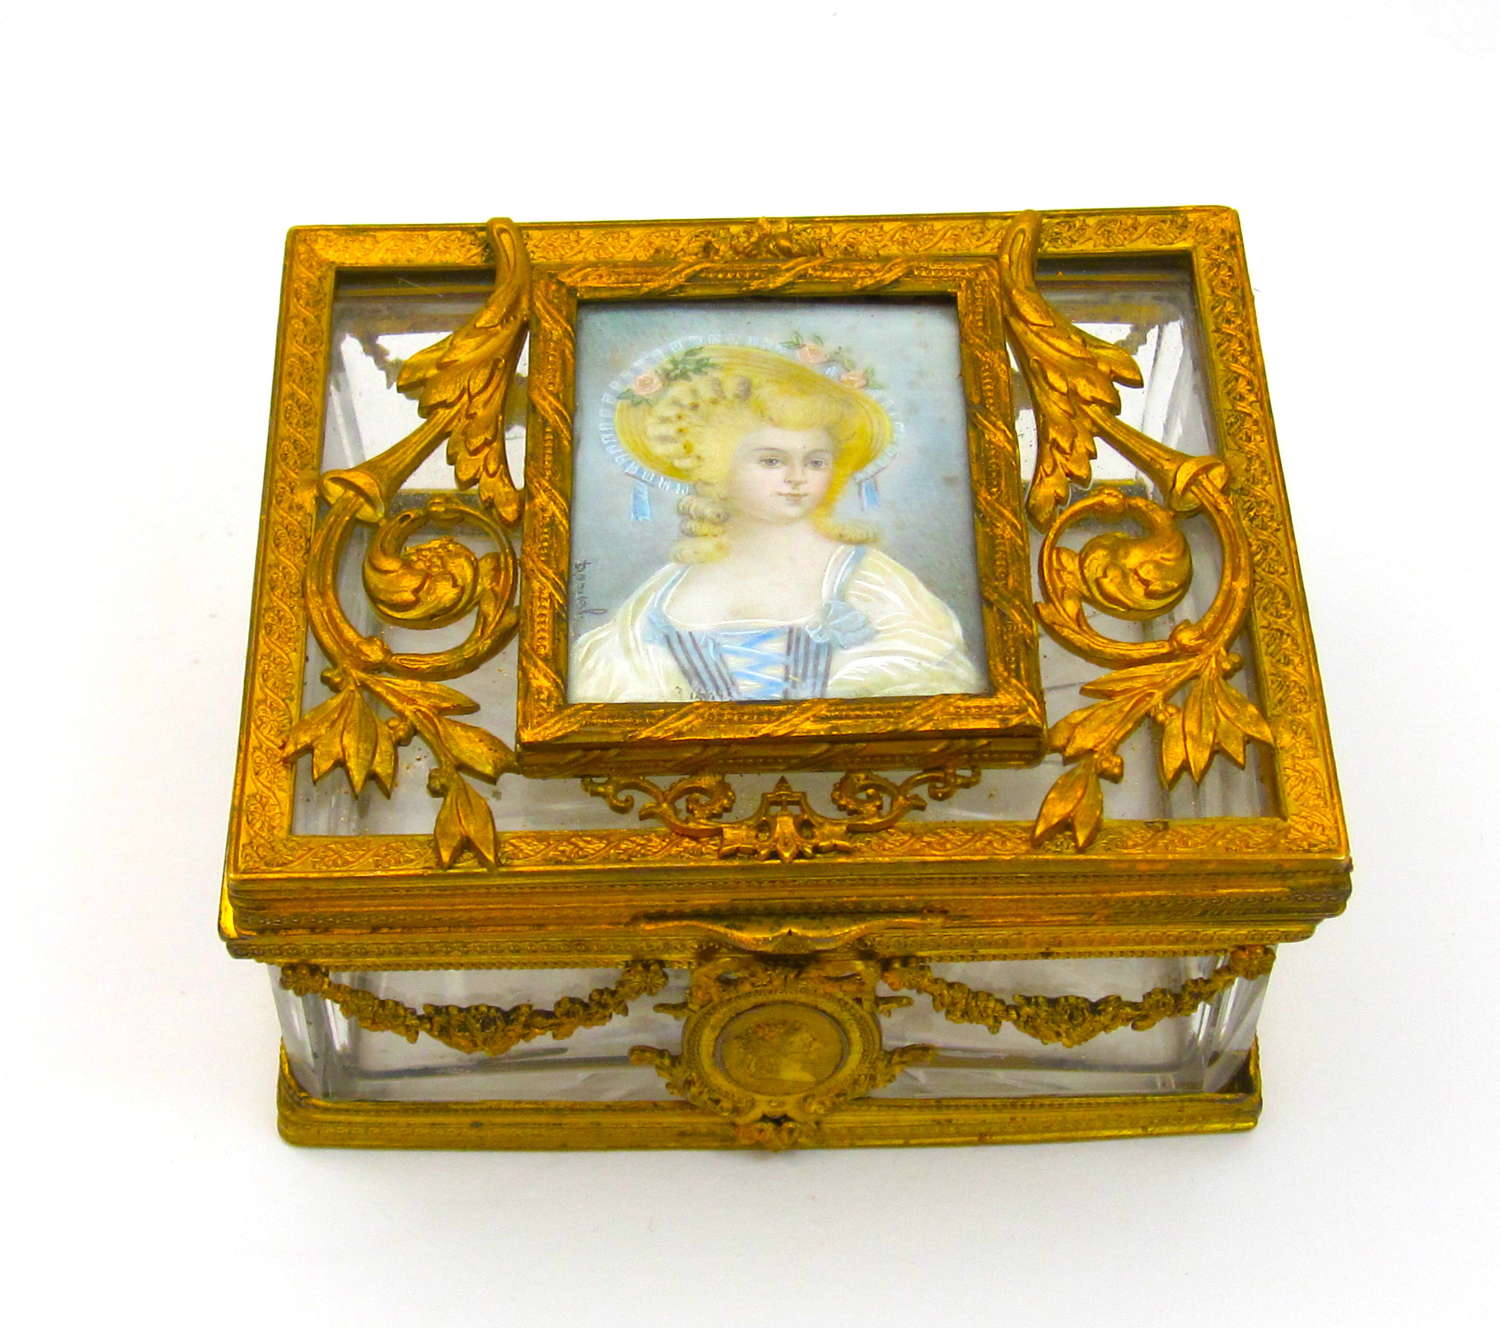 Palais Royal Crystal and Bronze Casket with Miniature